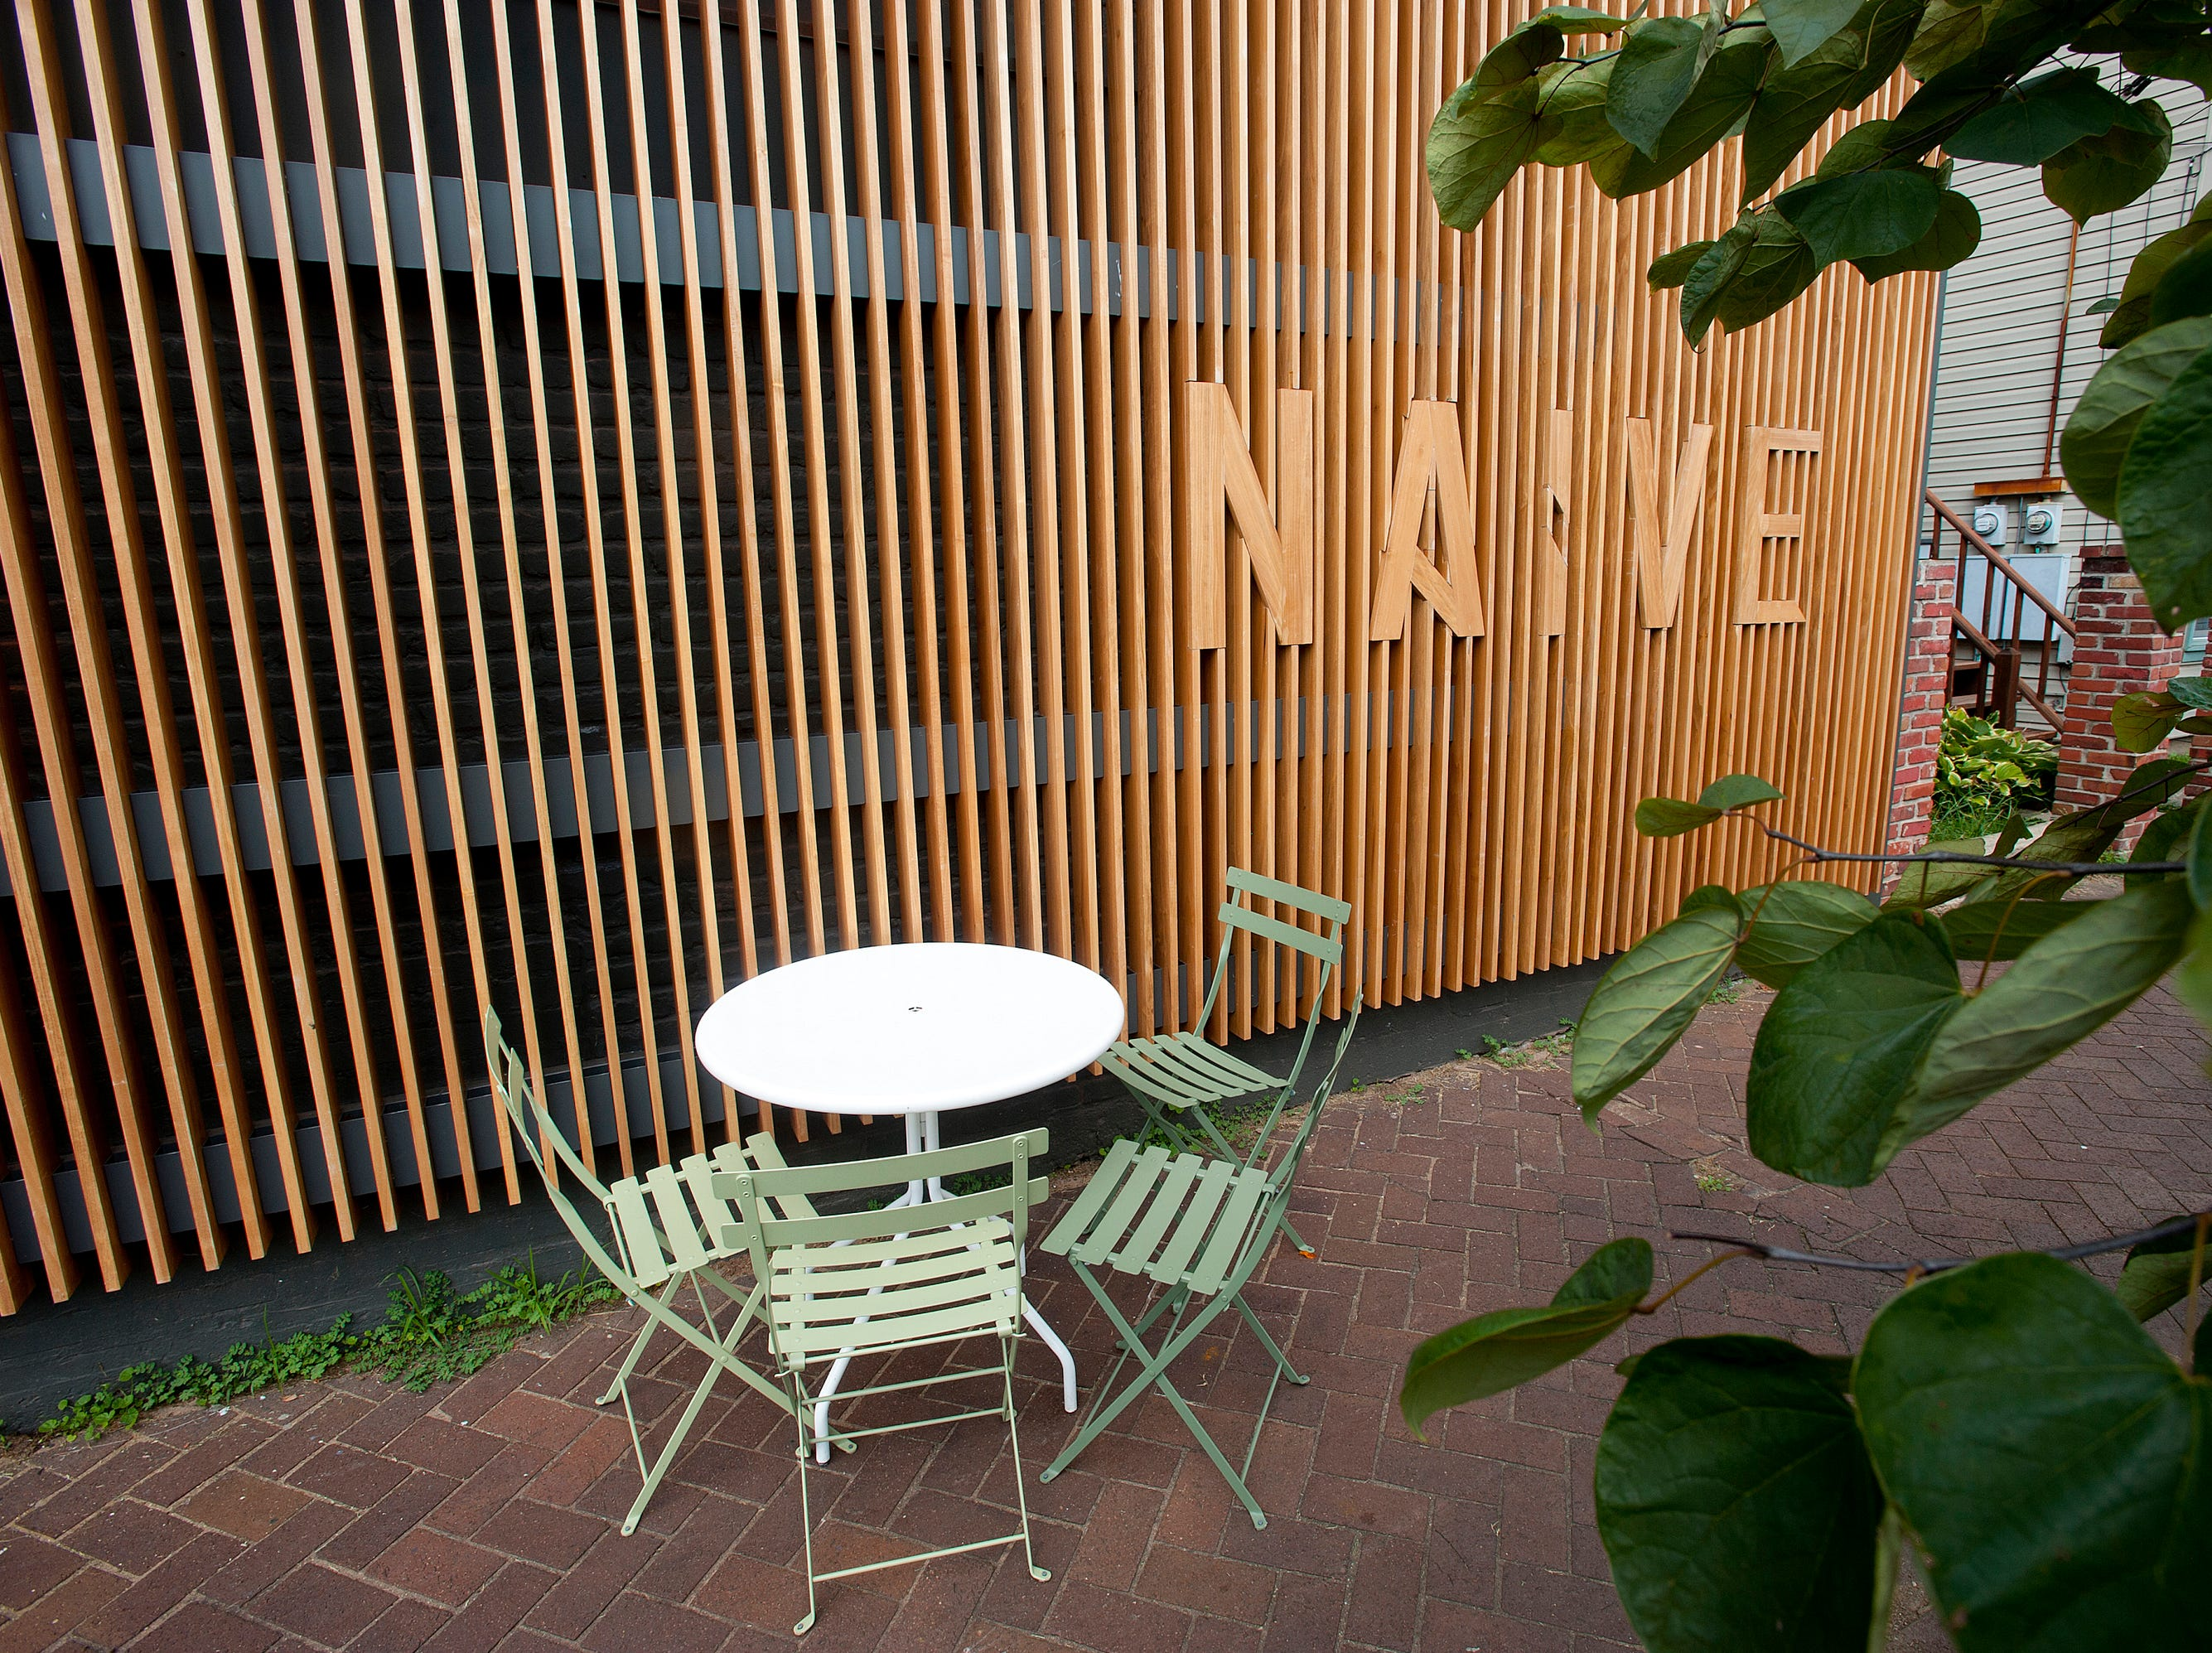 Sidewalk seating in front of Naive, a restaurant on E. Washington St.September 20, 2018